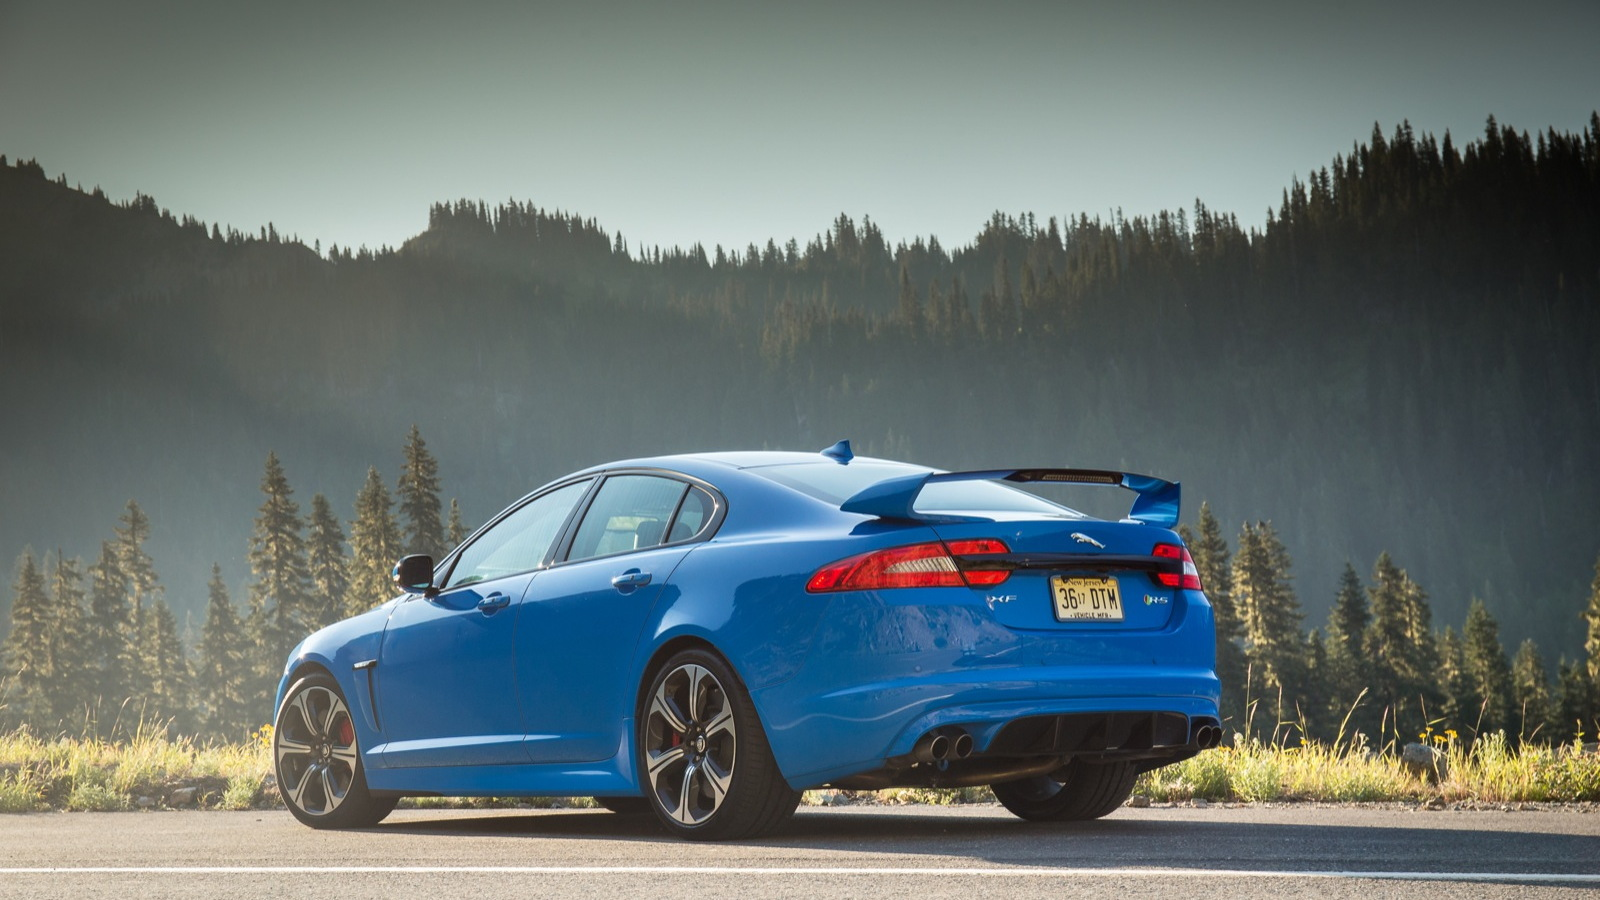 2014 Jaguar XFR-S  -  First Drive  -  August 2013